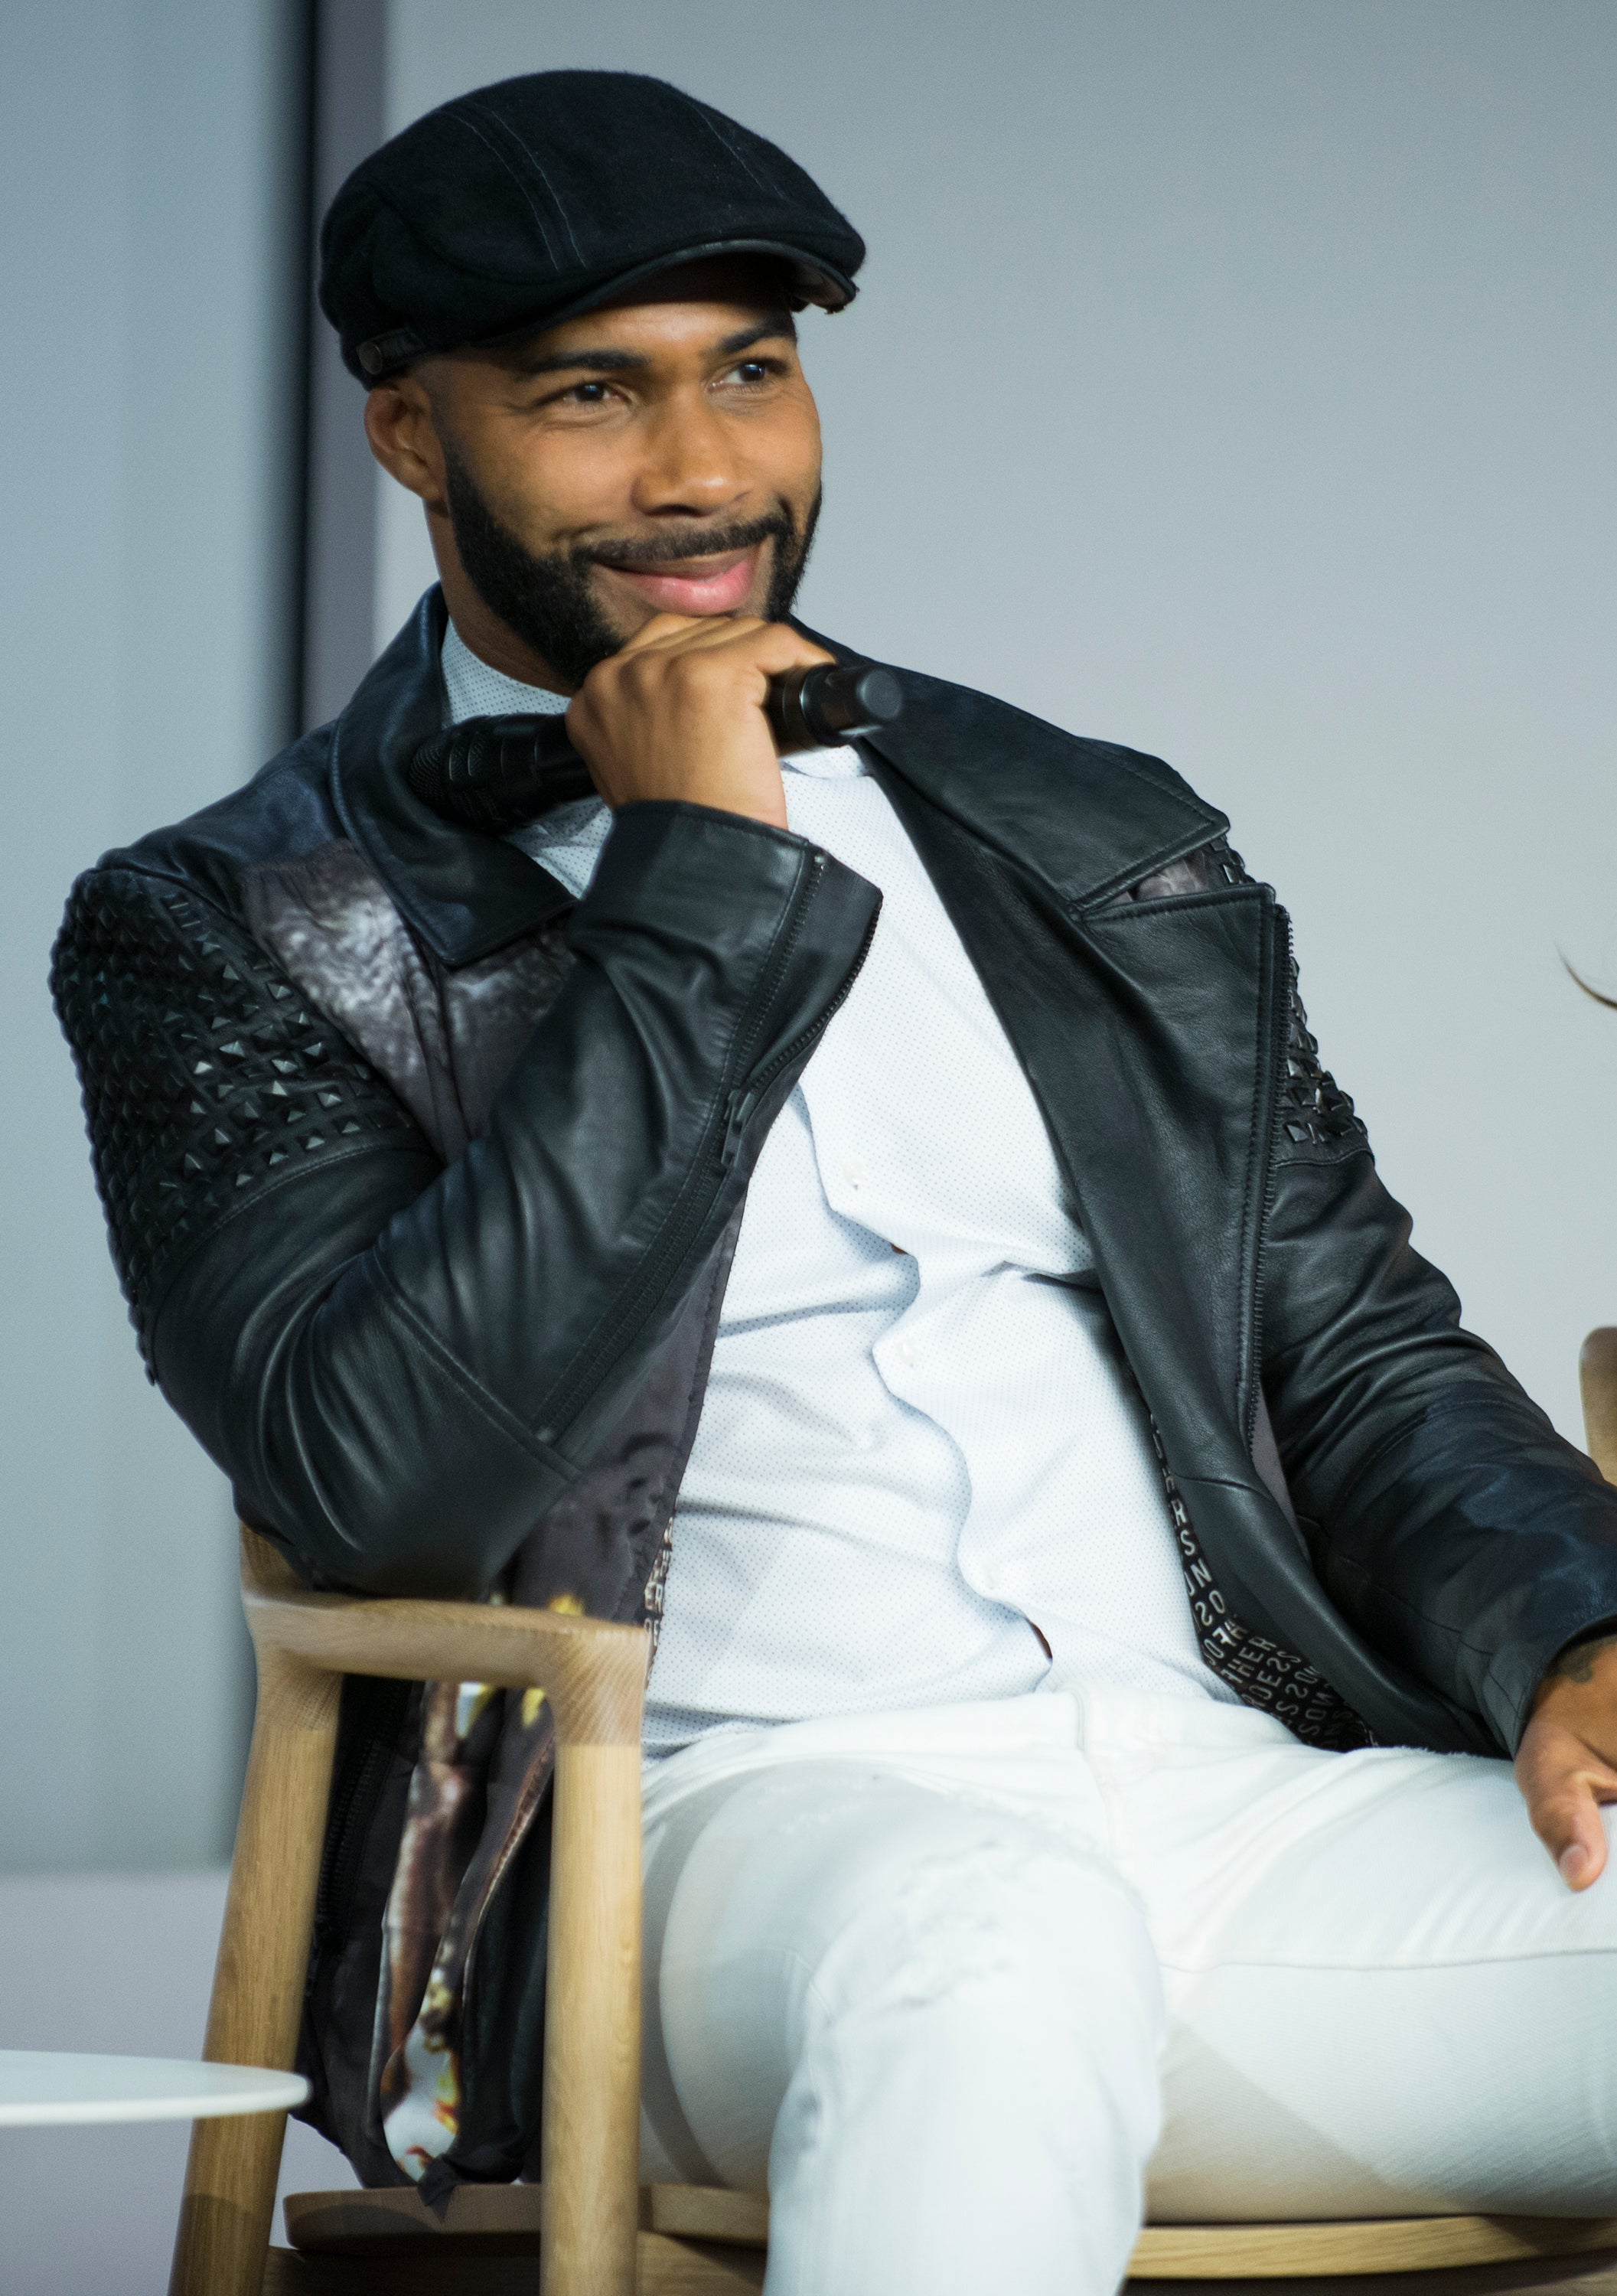 Omari Hardwick and Meagan Good Will Play Lovers In New Film